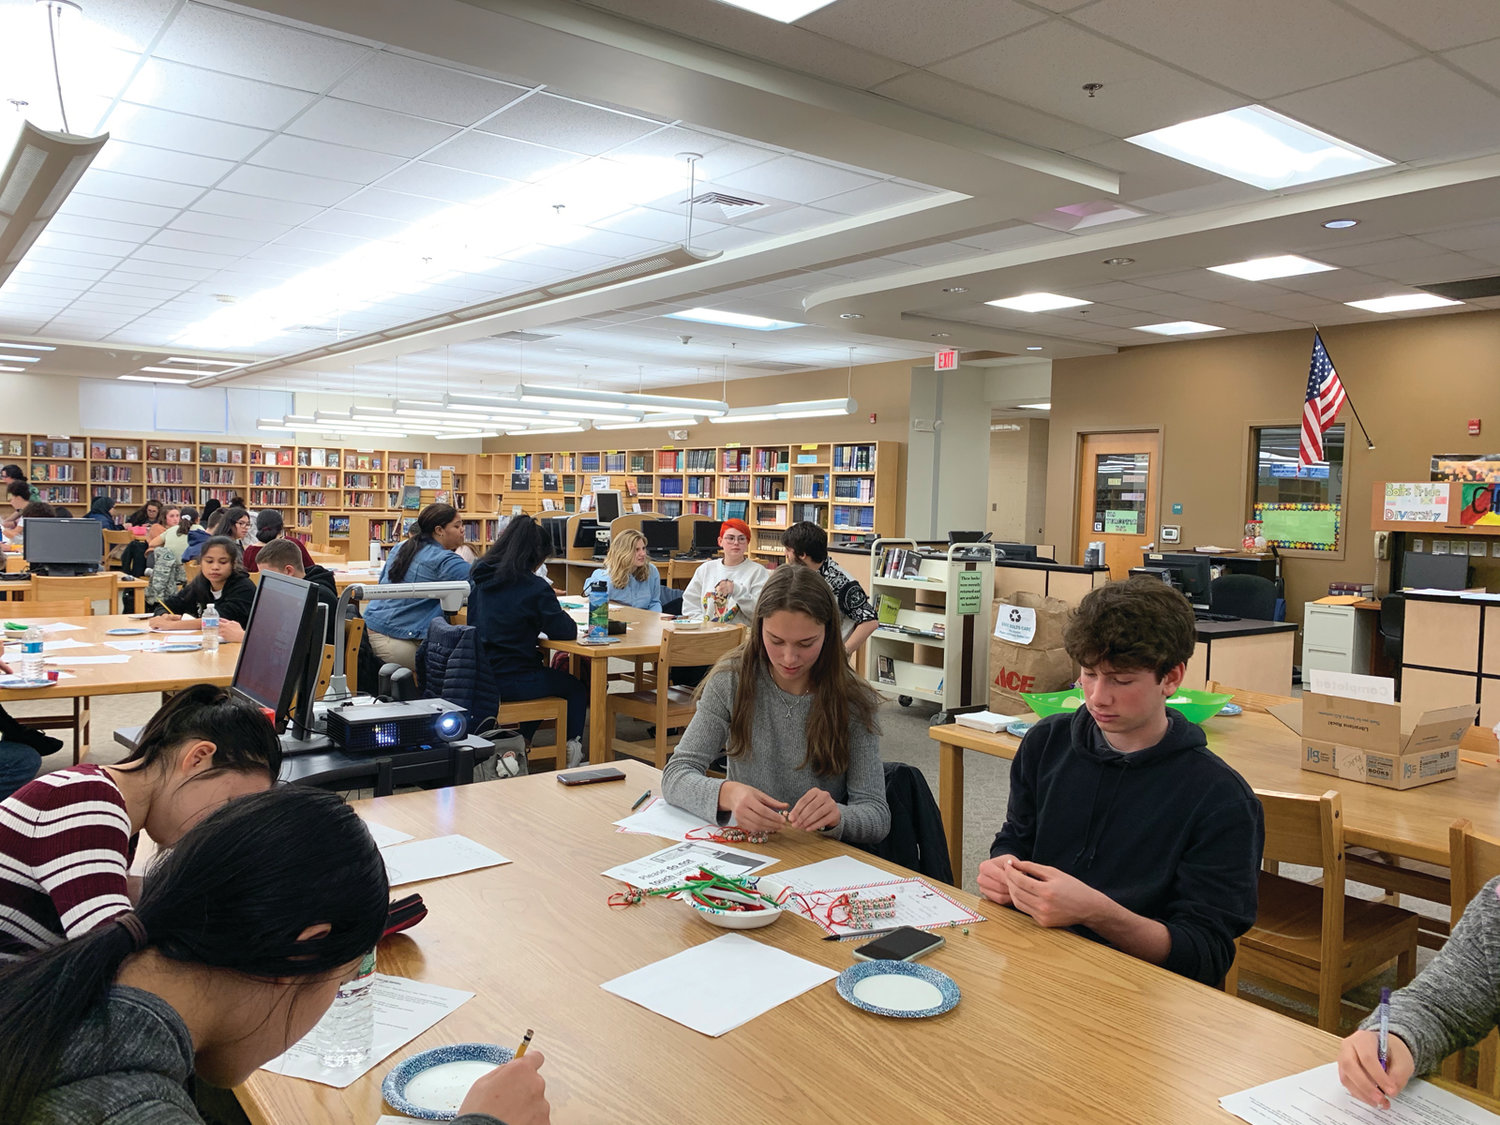 CRANSTON EAST ELVES: Students from Cranston East recently took time to write letters and make ornaments for U.S. veterans. The items will be distributed by Operation Rhody.